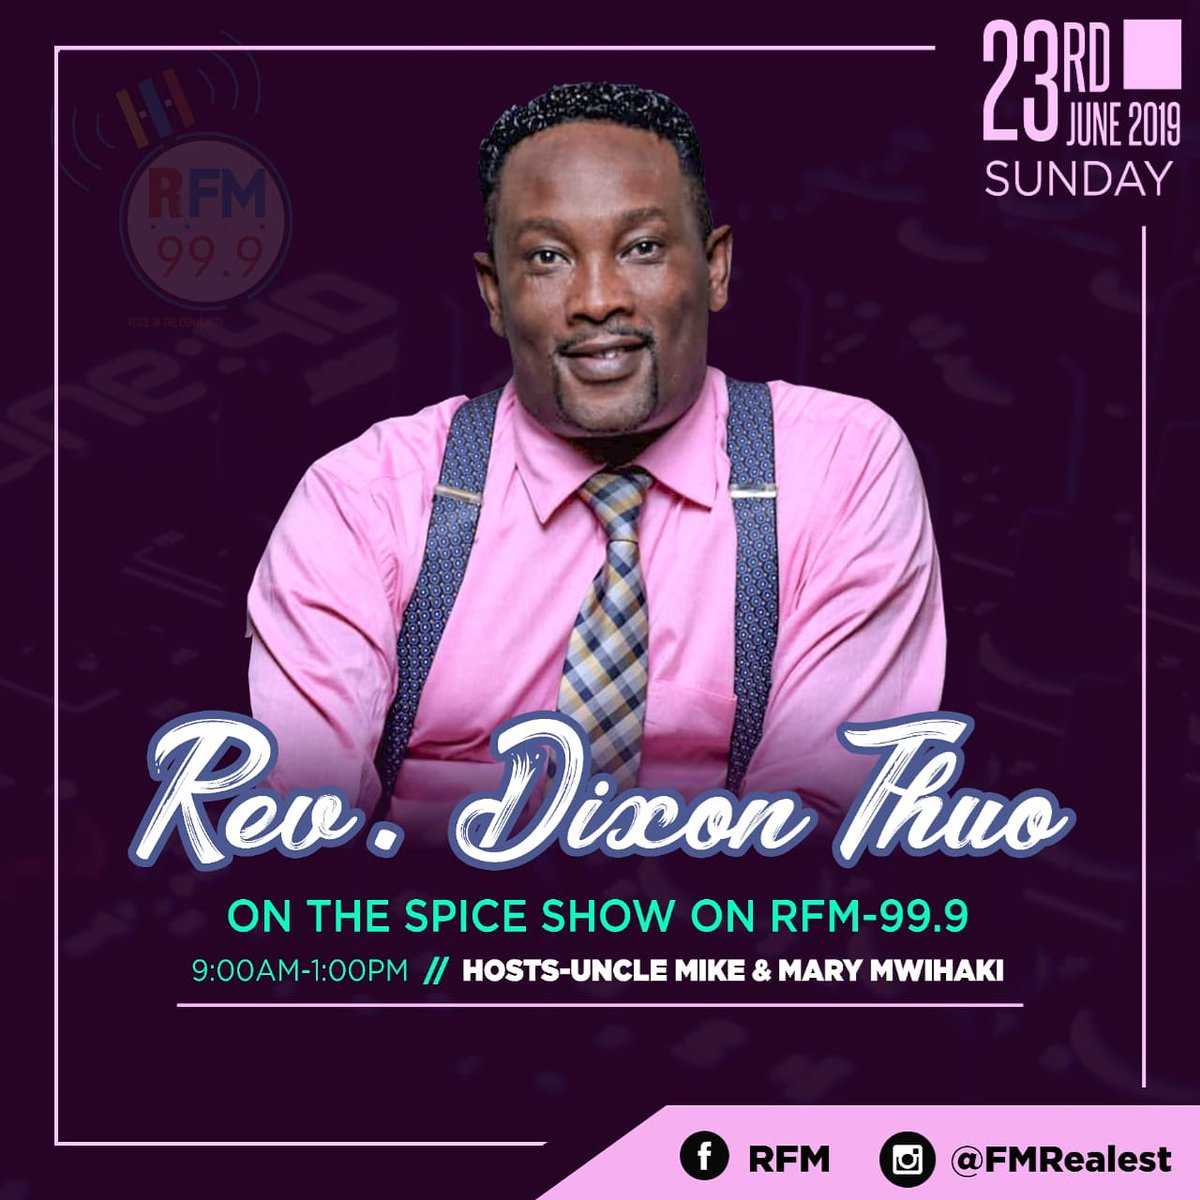 This Sunday on the #spiceshow with @Em_Eye_Kay. Don't forget to watch us live on Facebook page at Realest-fm Radio and follow is on Instagram @realestfmradio